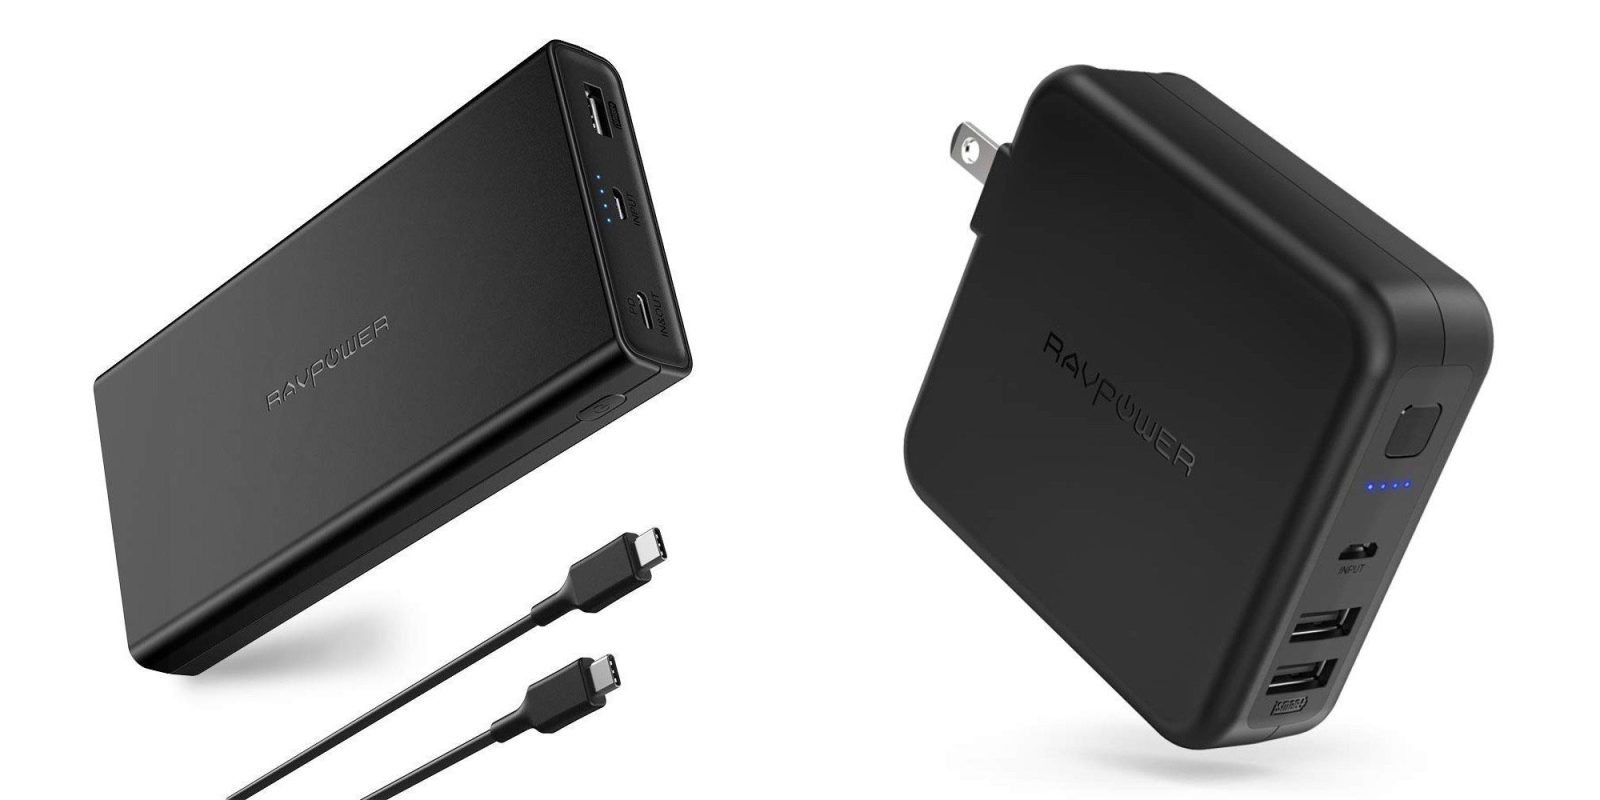 RAVPower USB-C accessories, Assistant-enabled smart home gear, more highlight today's best offers